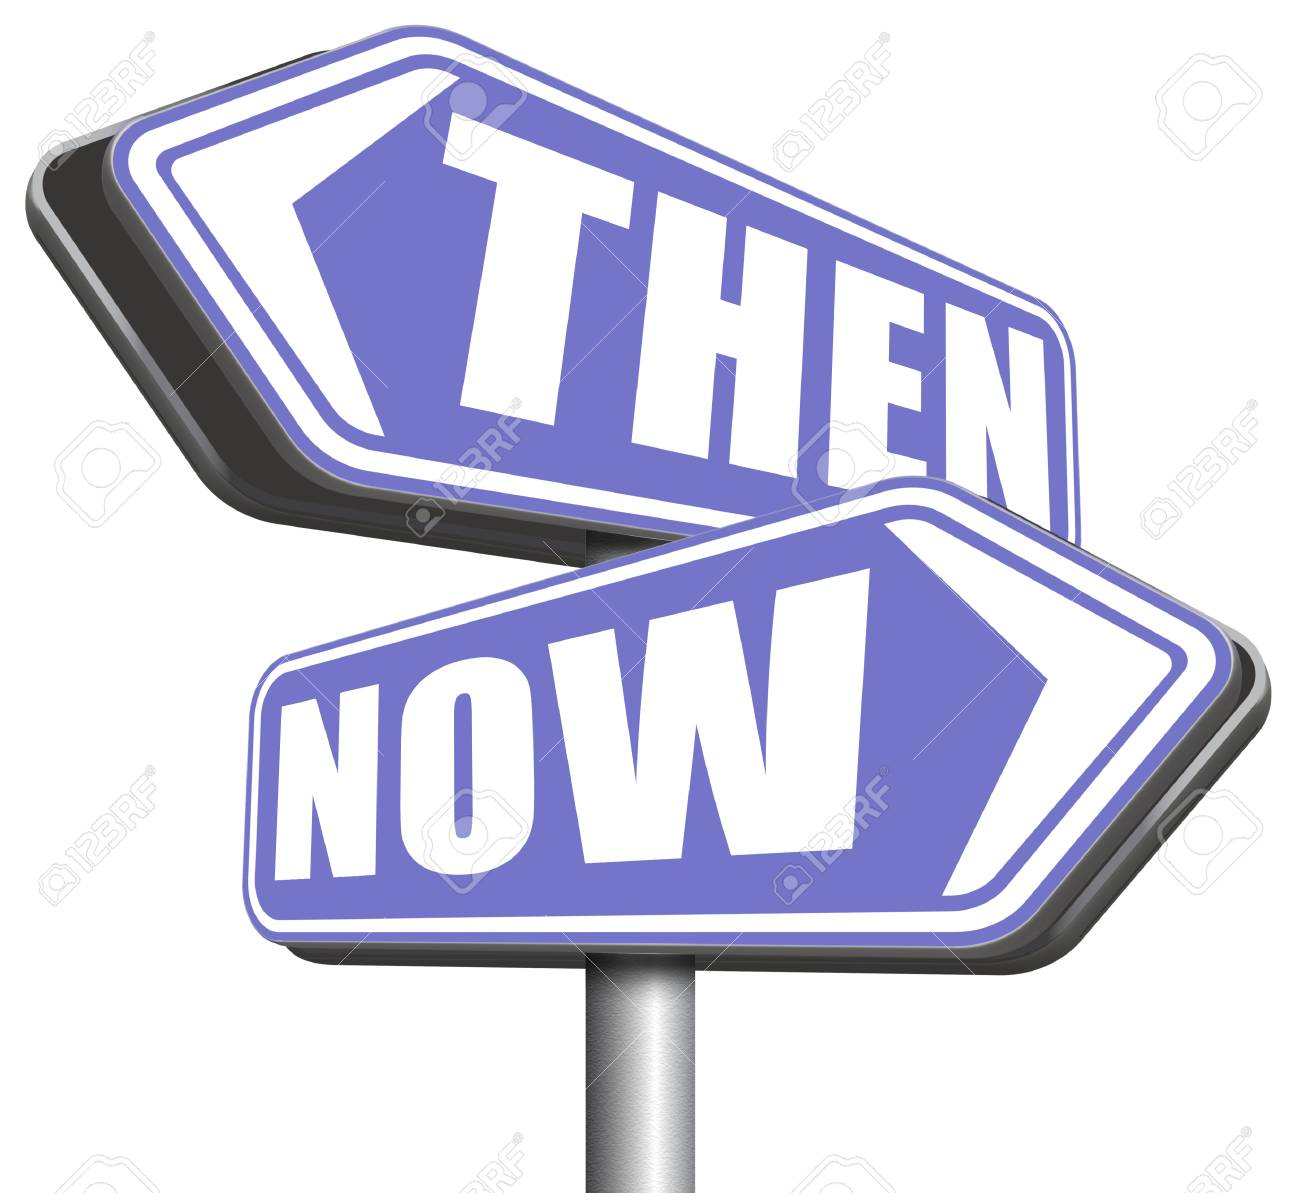 Then & now clipart image royalty free library Clipart Of Colorful Words, THEN AND NOW, With Shadows, On ... image royalty free library